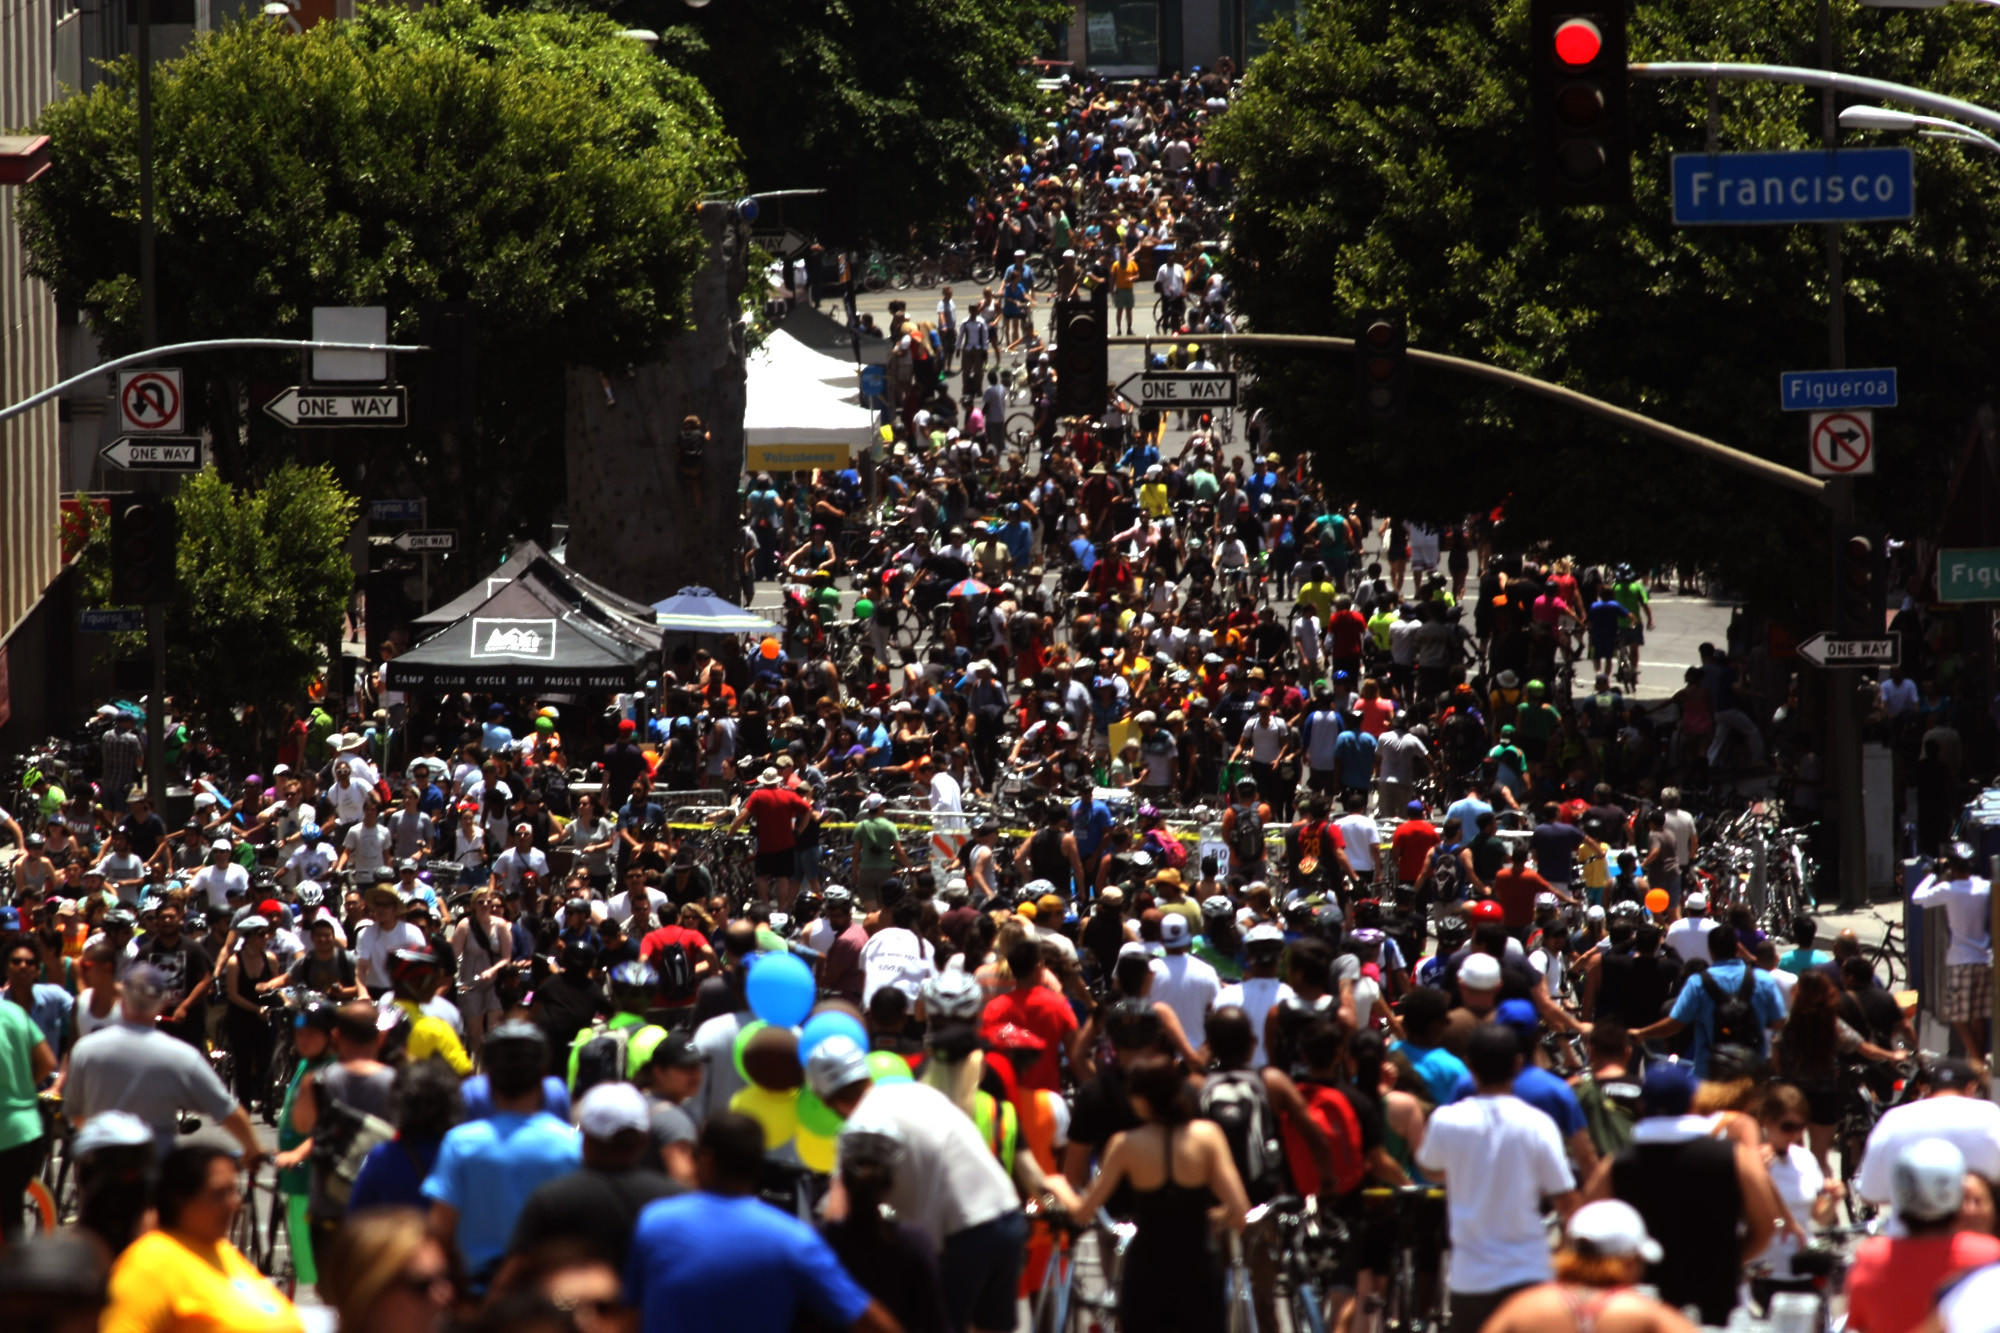 Hundreds take part in a CicLAvia event in downtown L.A. in June 2013.